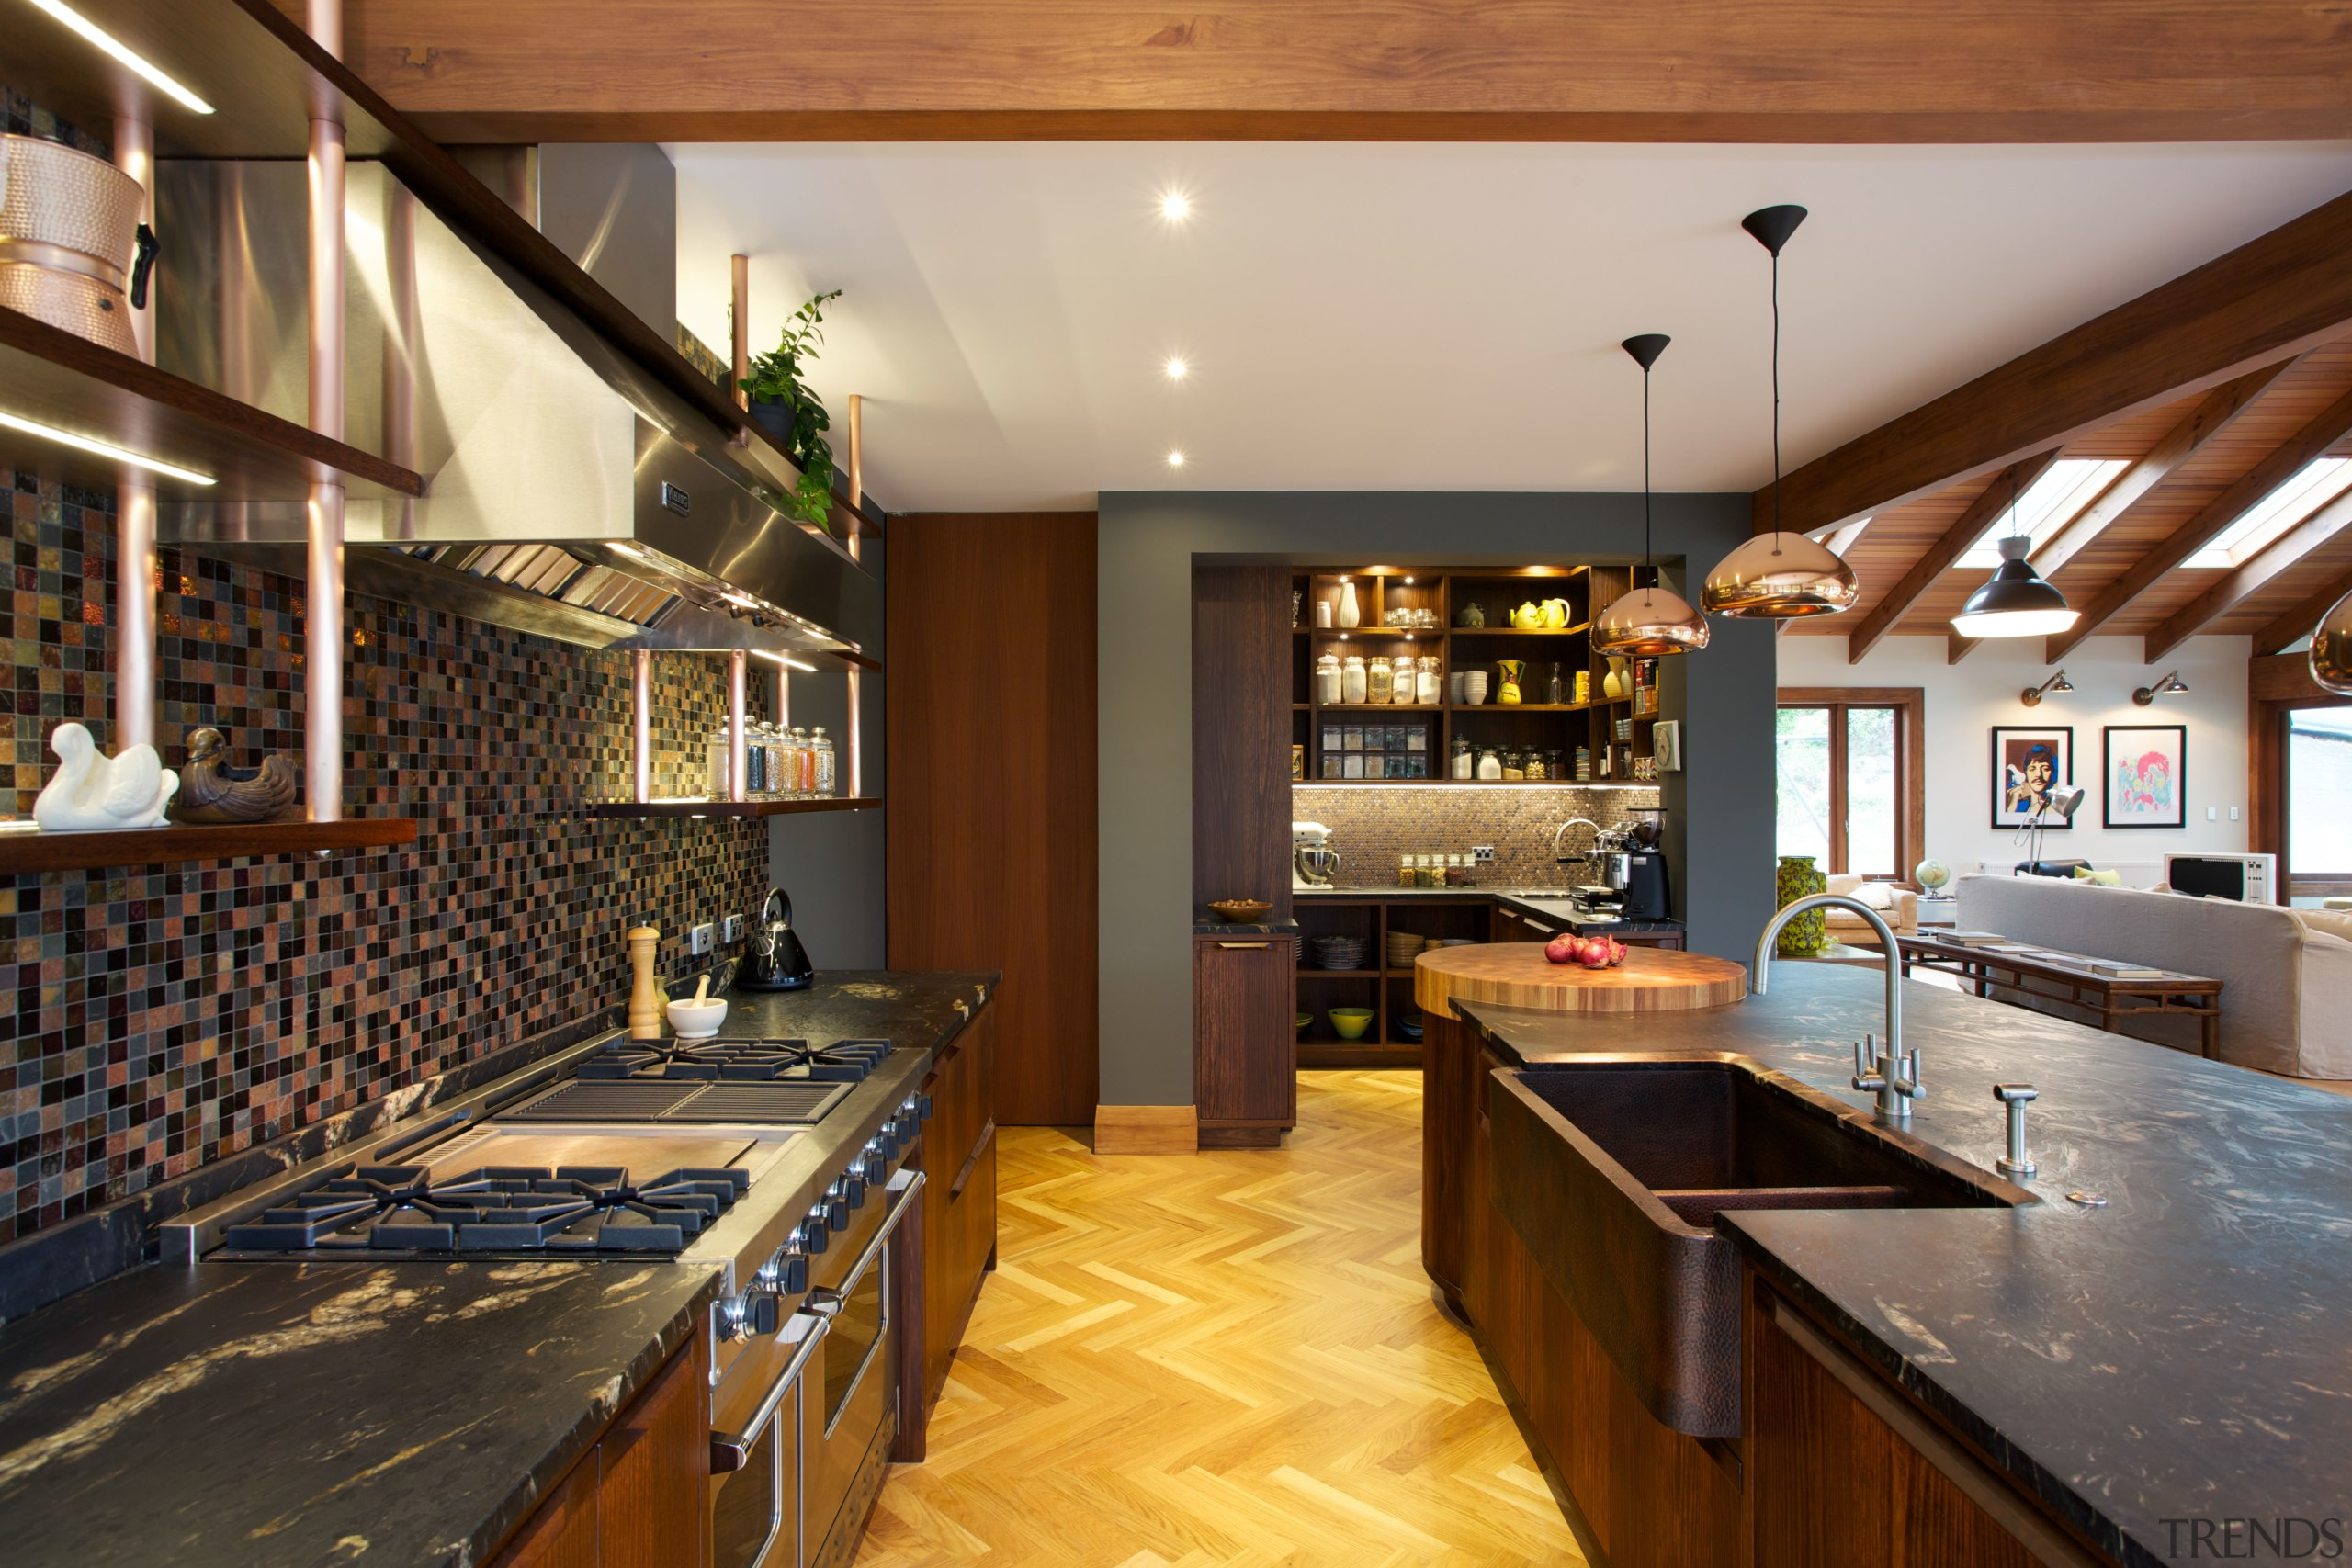 Natalie Du Bois kitchen evokes the textured look countertop, interior design, kitchen, real estate, room, brown